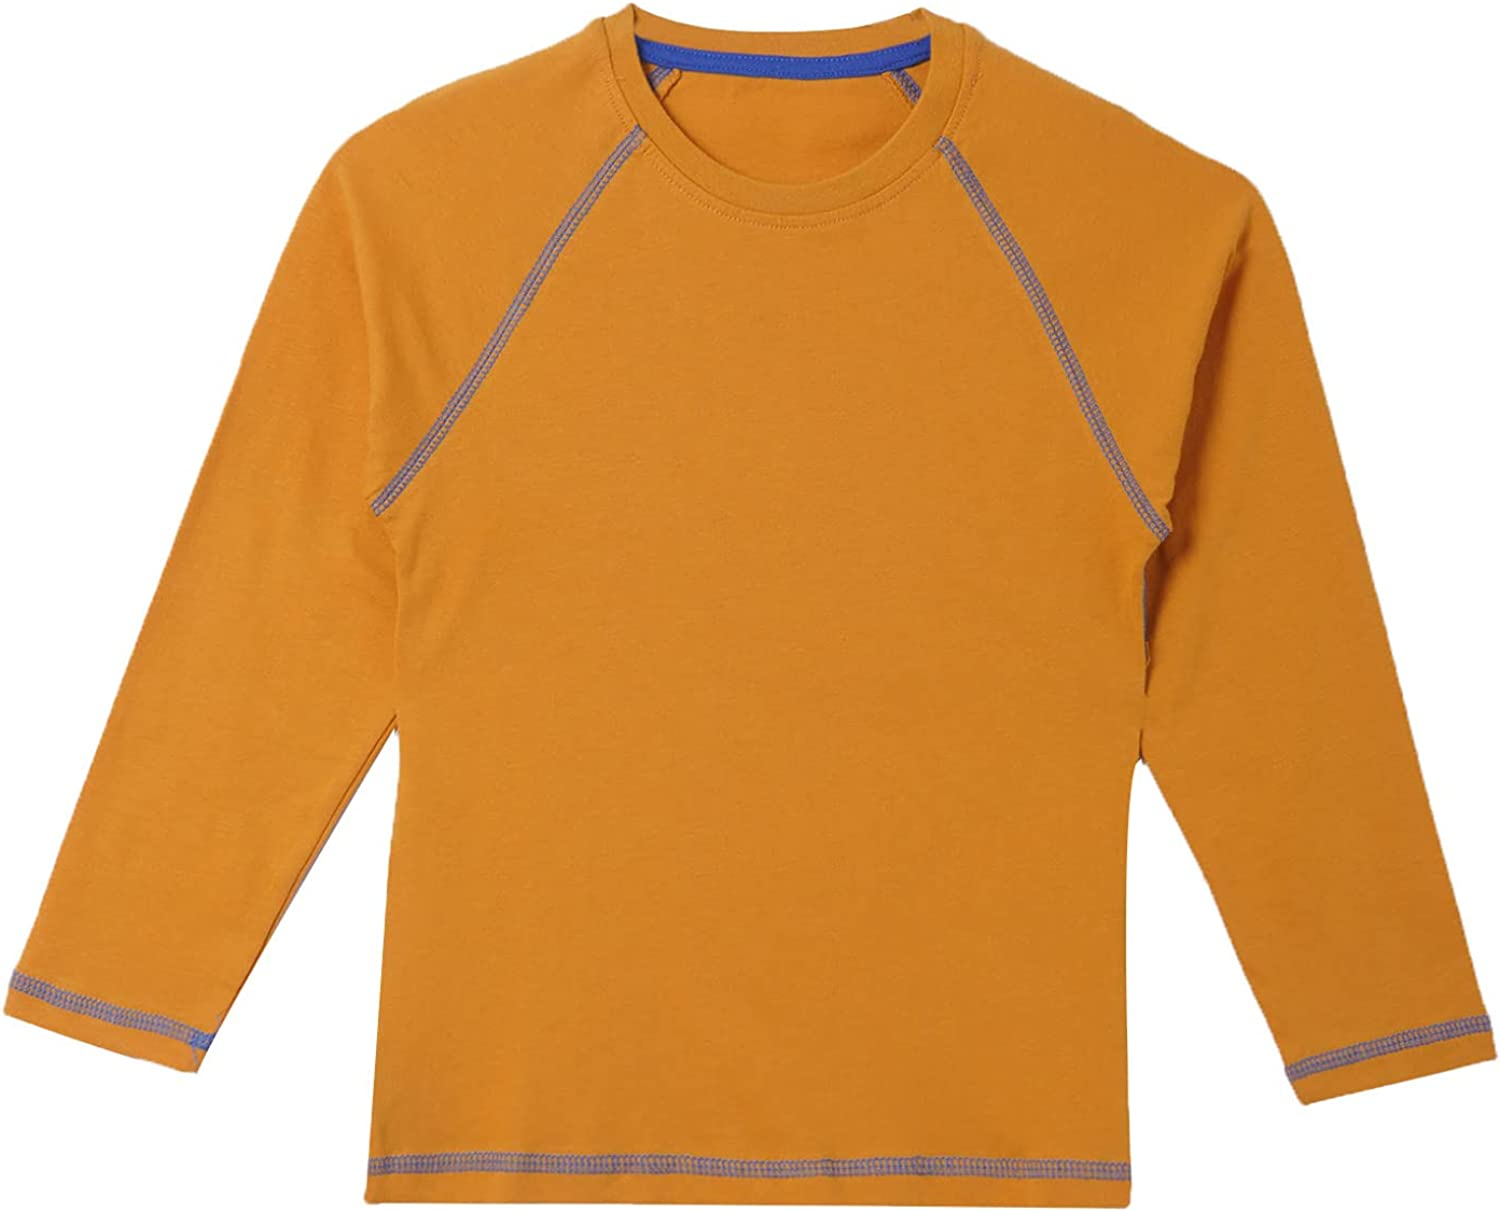 Hansber Kids Boys Solid Color Long Sleeve Tops Lightweight Athletic Sweatshirts Pullover Casual Undershirts